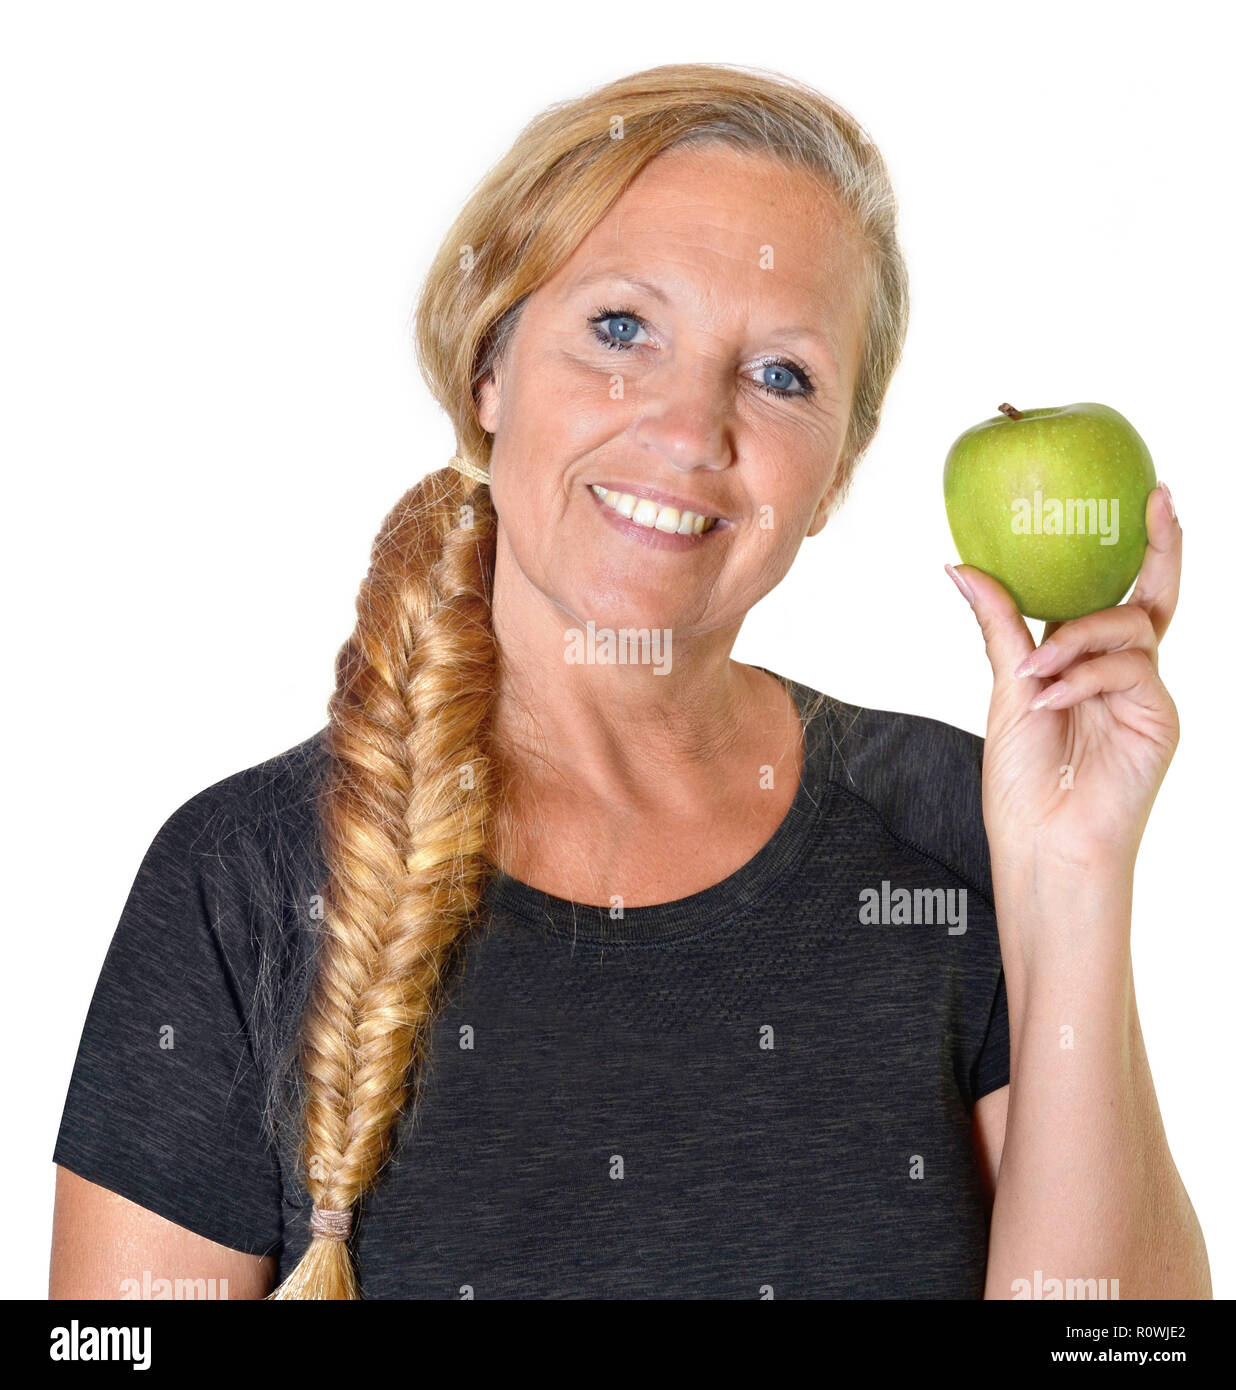 retiree healthy nutrition vitamins apple fit happy - Stock Image